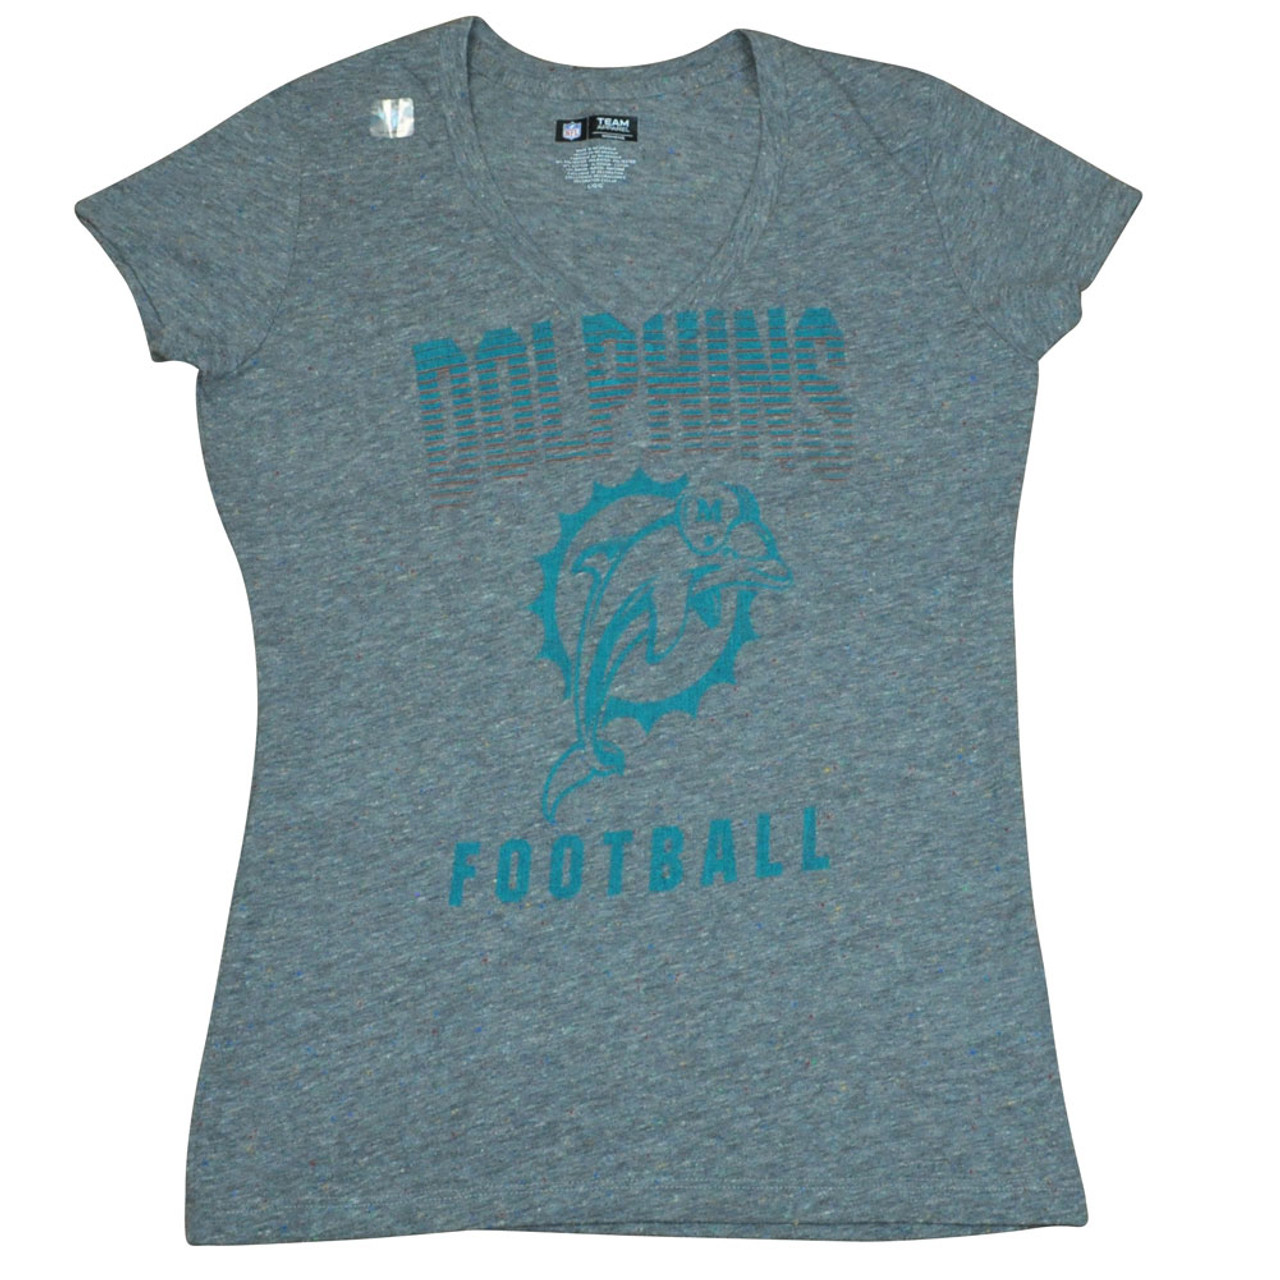 9d6db02b7 NFL Reebok Miami Dolphins Fins Women Ladies Pride Playing Tshirt DW2502  Large - Sinbad Sports Store